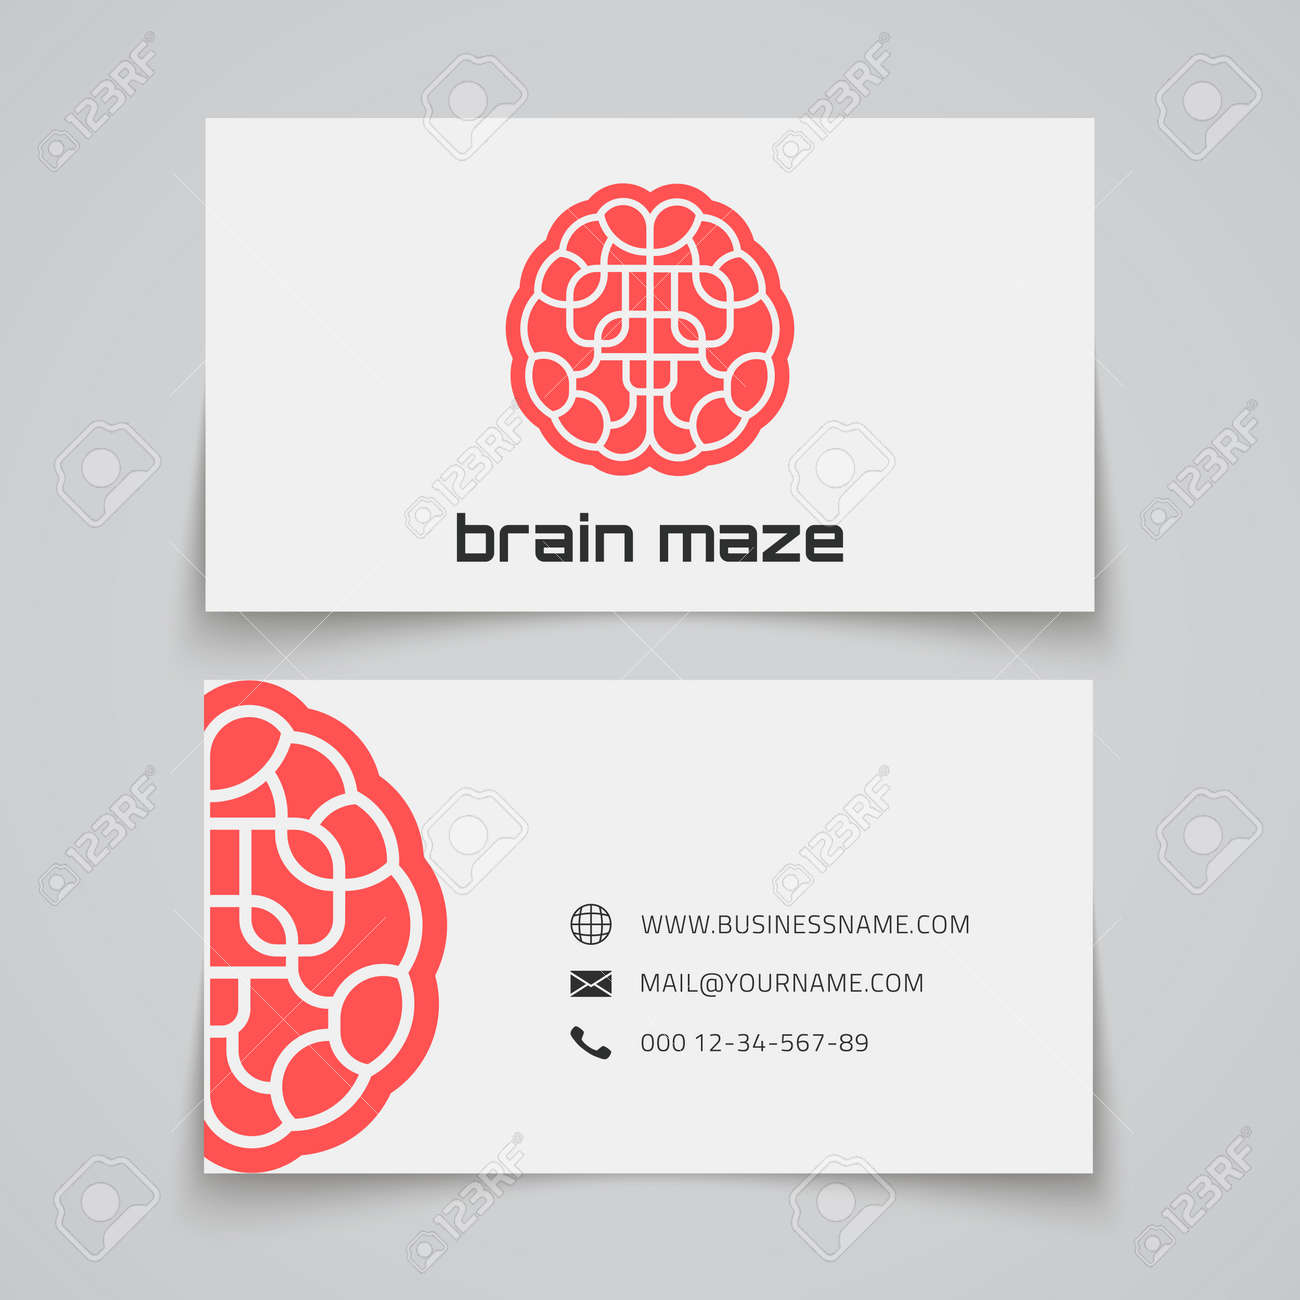 Business card template brain maze concept logo vector illustration business card template brain maze concept logo vector illustration imagens 37936041 reheart Gallery